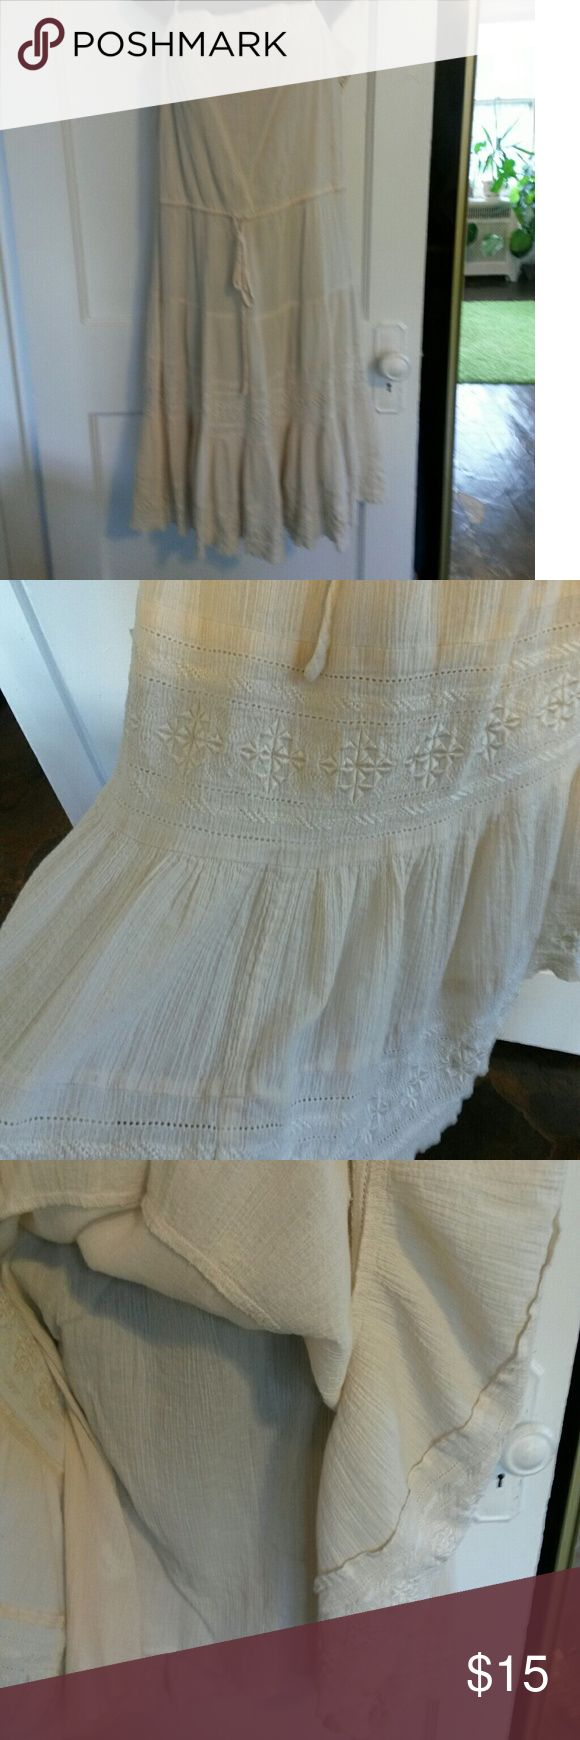 """Light cream summer dress 100% cotton.  String tie around waist. Pretty pattern near bottom,  on bottom and around top. 4 button closure on side. Adjustable straps. Built in slip.  Light elastic at top of back. 35"""" from top of chest to bottom.  Not including straps. Says dry clean only but we've always just washed it on gentle cycle. BCBGMaxAzria Dresses Midi"""